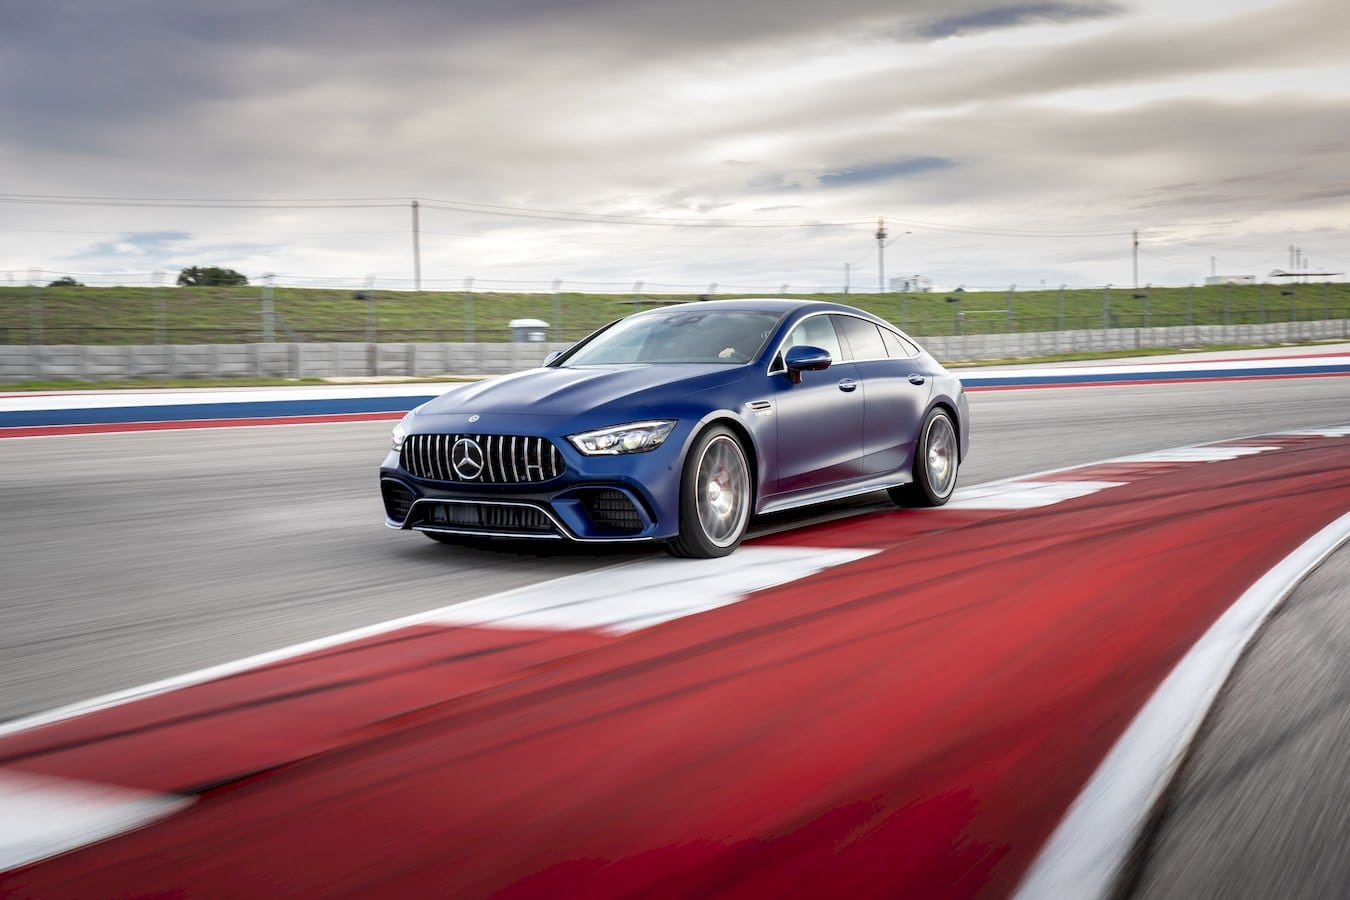 The all-new AMG GT is the most powerful Mercedes 4-Door Coupé